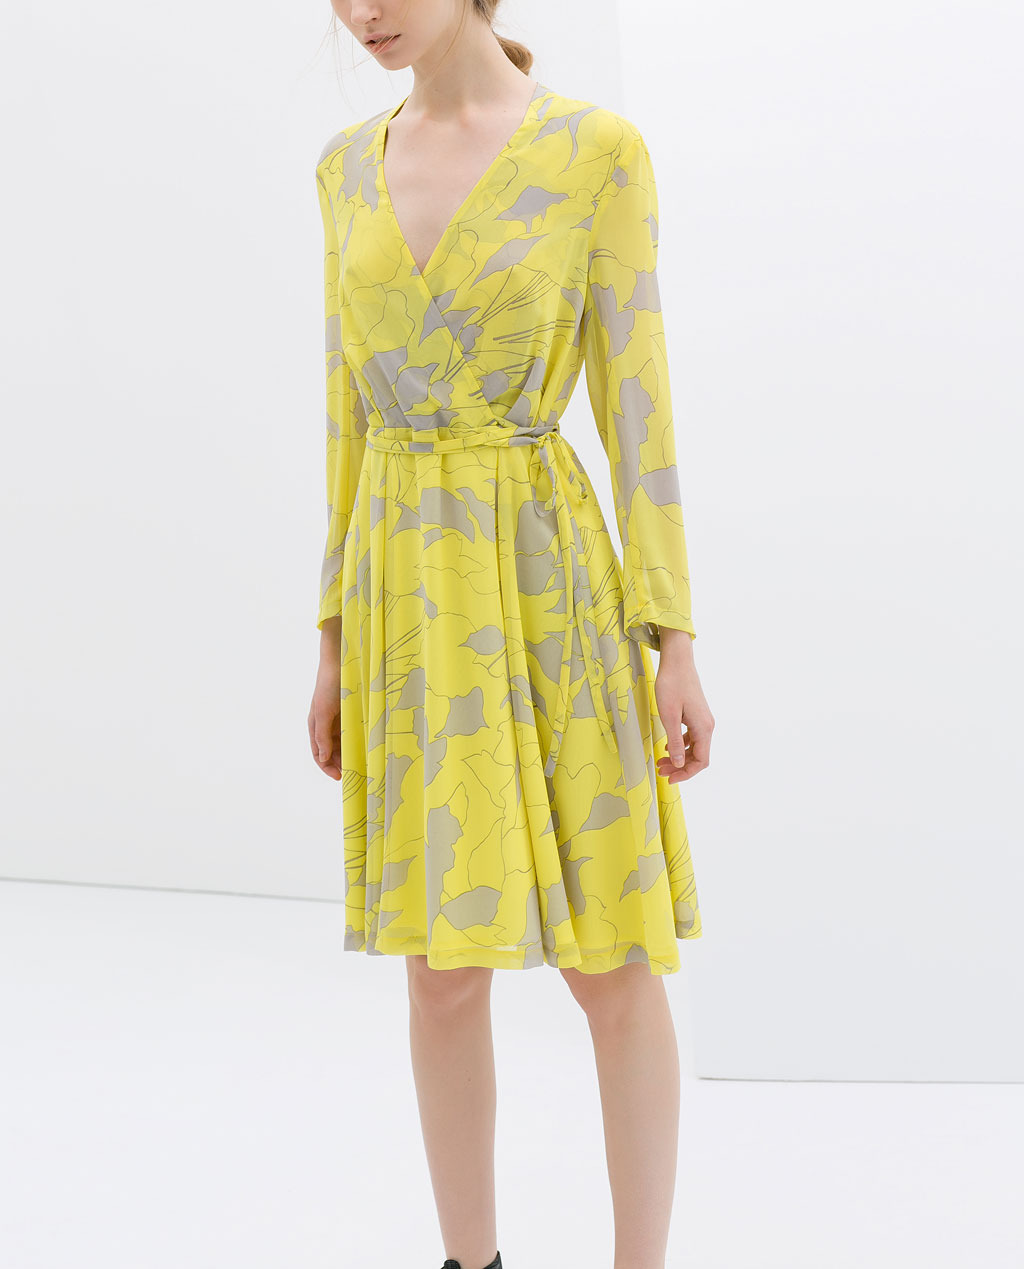 Printed Crossover Dress - style: faux wrap/wrap; neckline: v-neck; waist detail: belted waist/tie at waist/drawstring; predominant colour: yellow; secondary colour: mid grey; occasions: casual, creative work; length: on the knee; fit: soft a-line; fibres: polyester/polyamide - 100%; hip detail: subtle/flattering hip detail; sleeve length: long sleeve; sleeve style: standard; texture group: cotton feel fabrics; pattern type: fabric; pattern size: big & busy; pattern: florals; trends: furious florals; season: s/s 2014